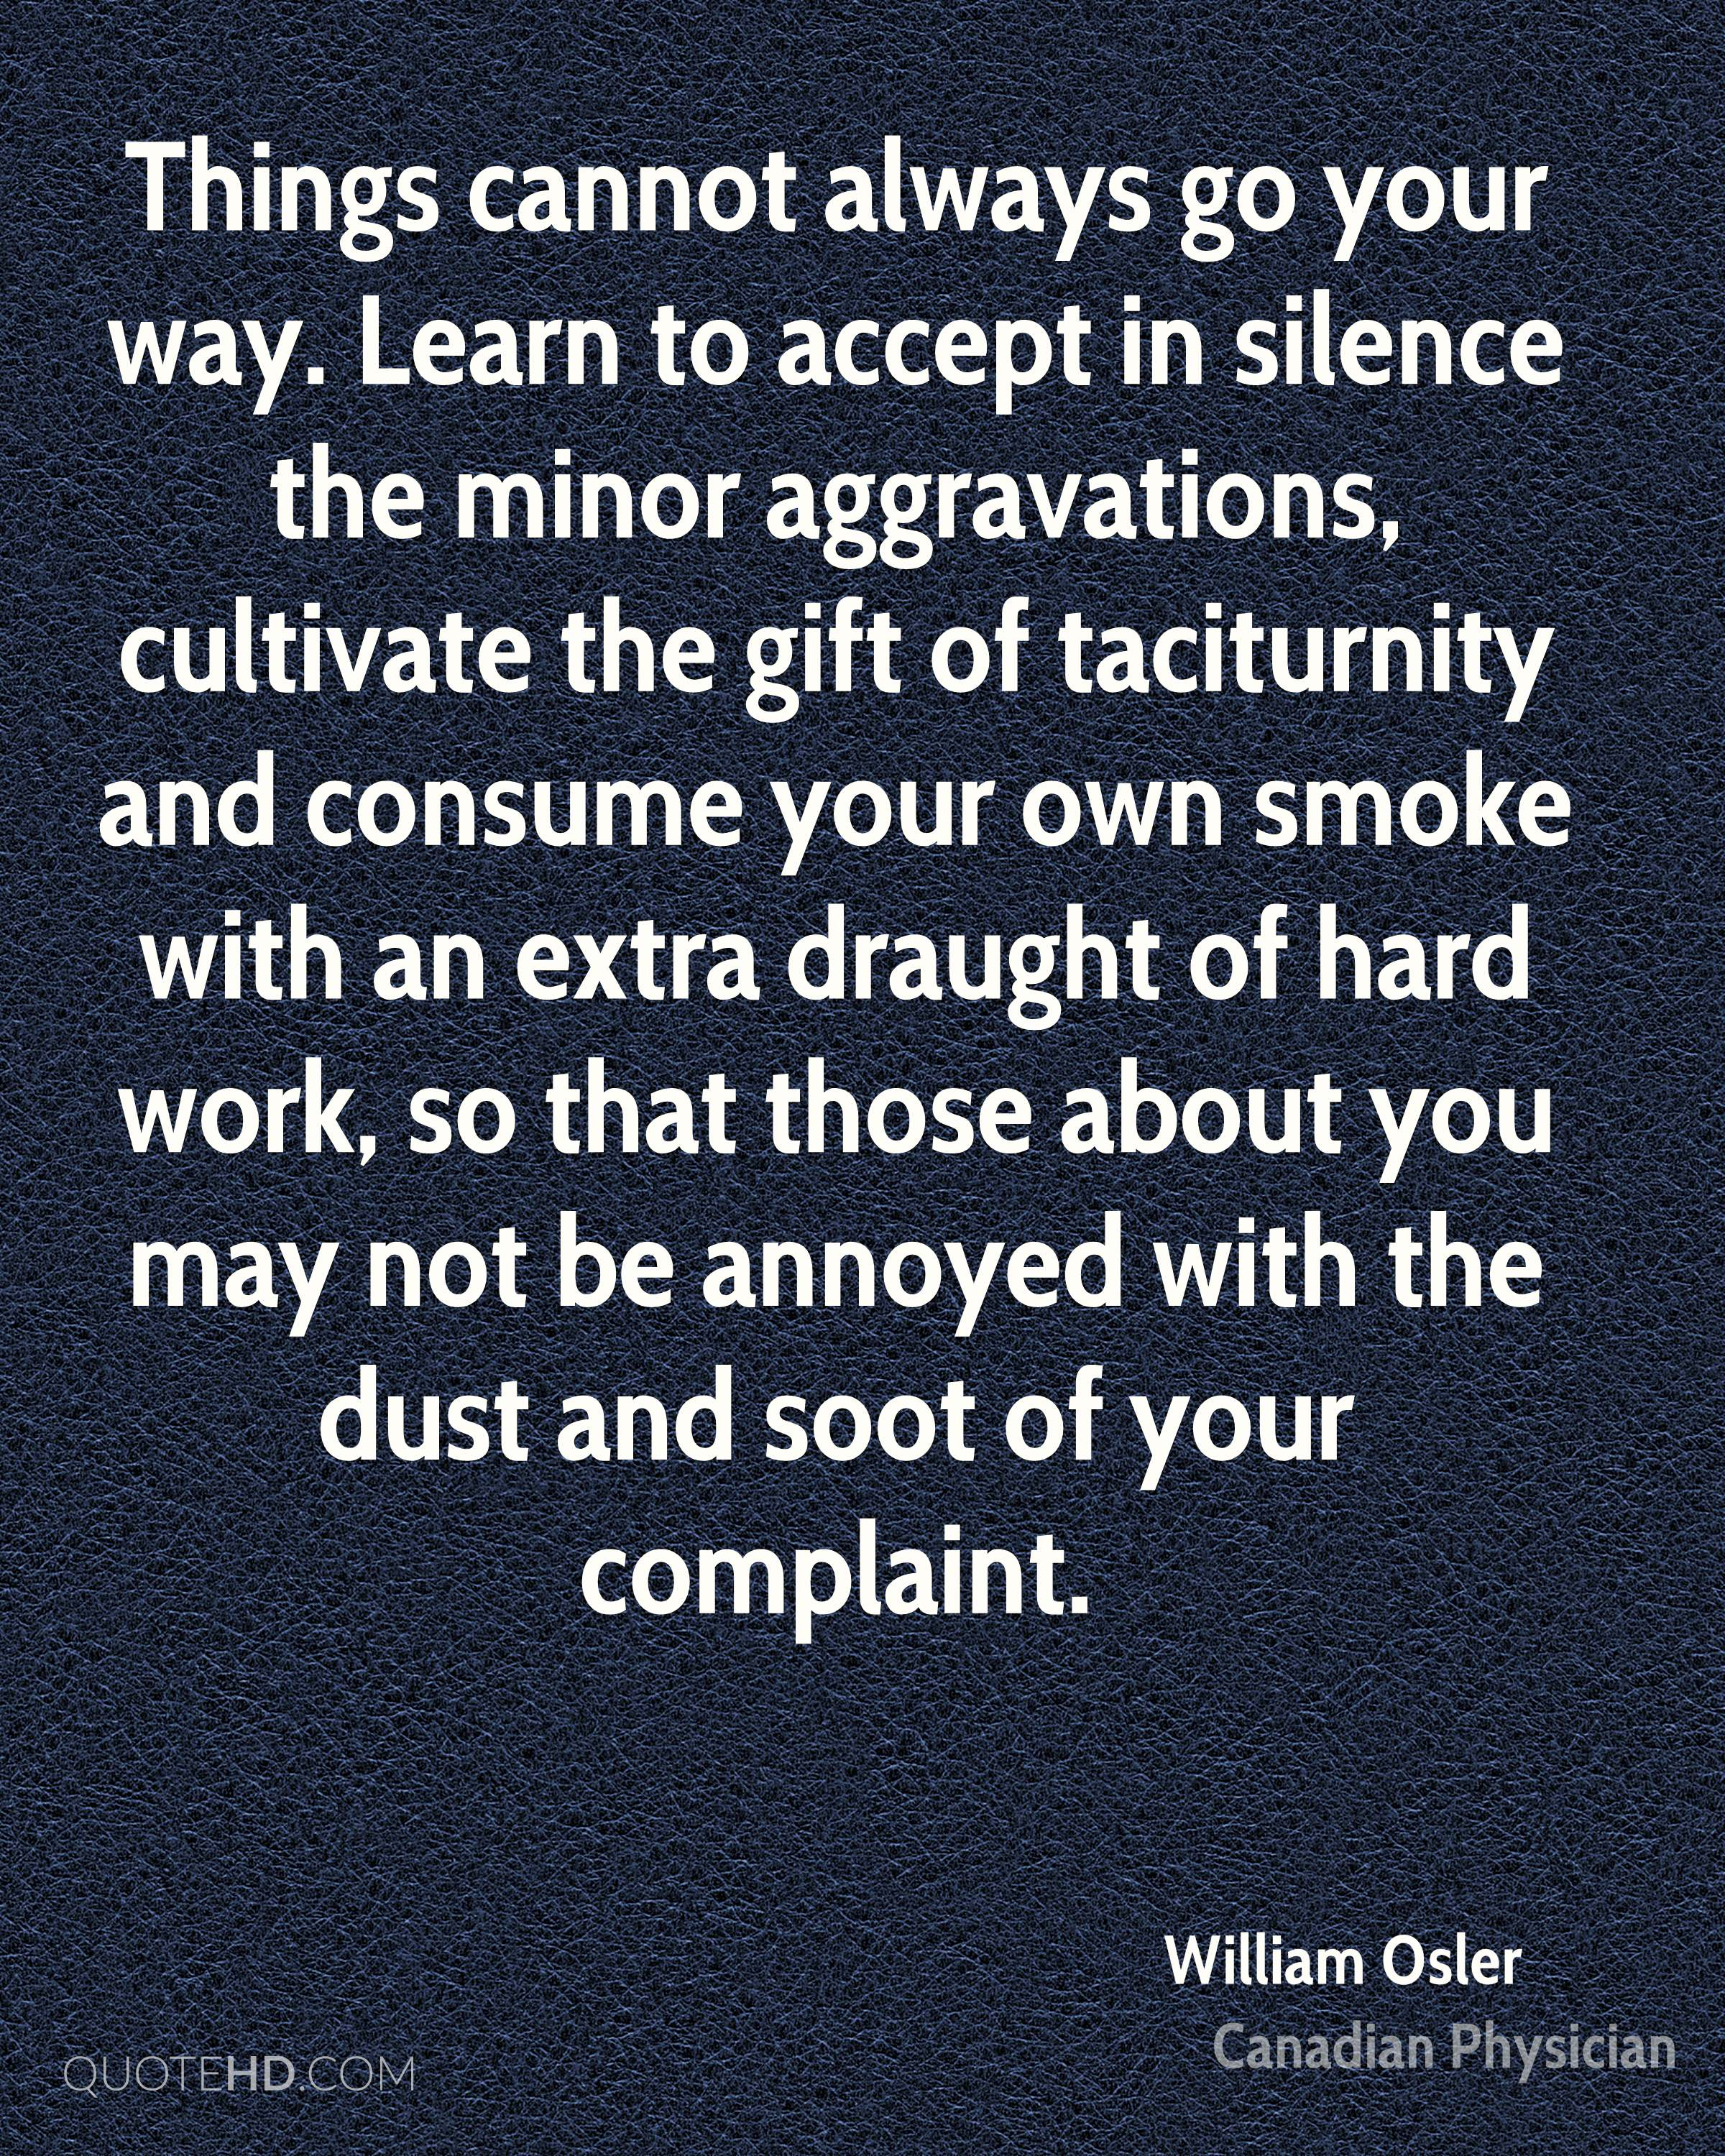 Things cannot always go your way. Learn to accept in silence the minor aggravations, cultivate the gift of taciturnity and consume your own smoke with an extra draught of hard work, so that those about you may not be annoyed with the dust and soot of your complaint.